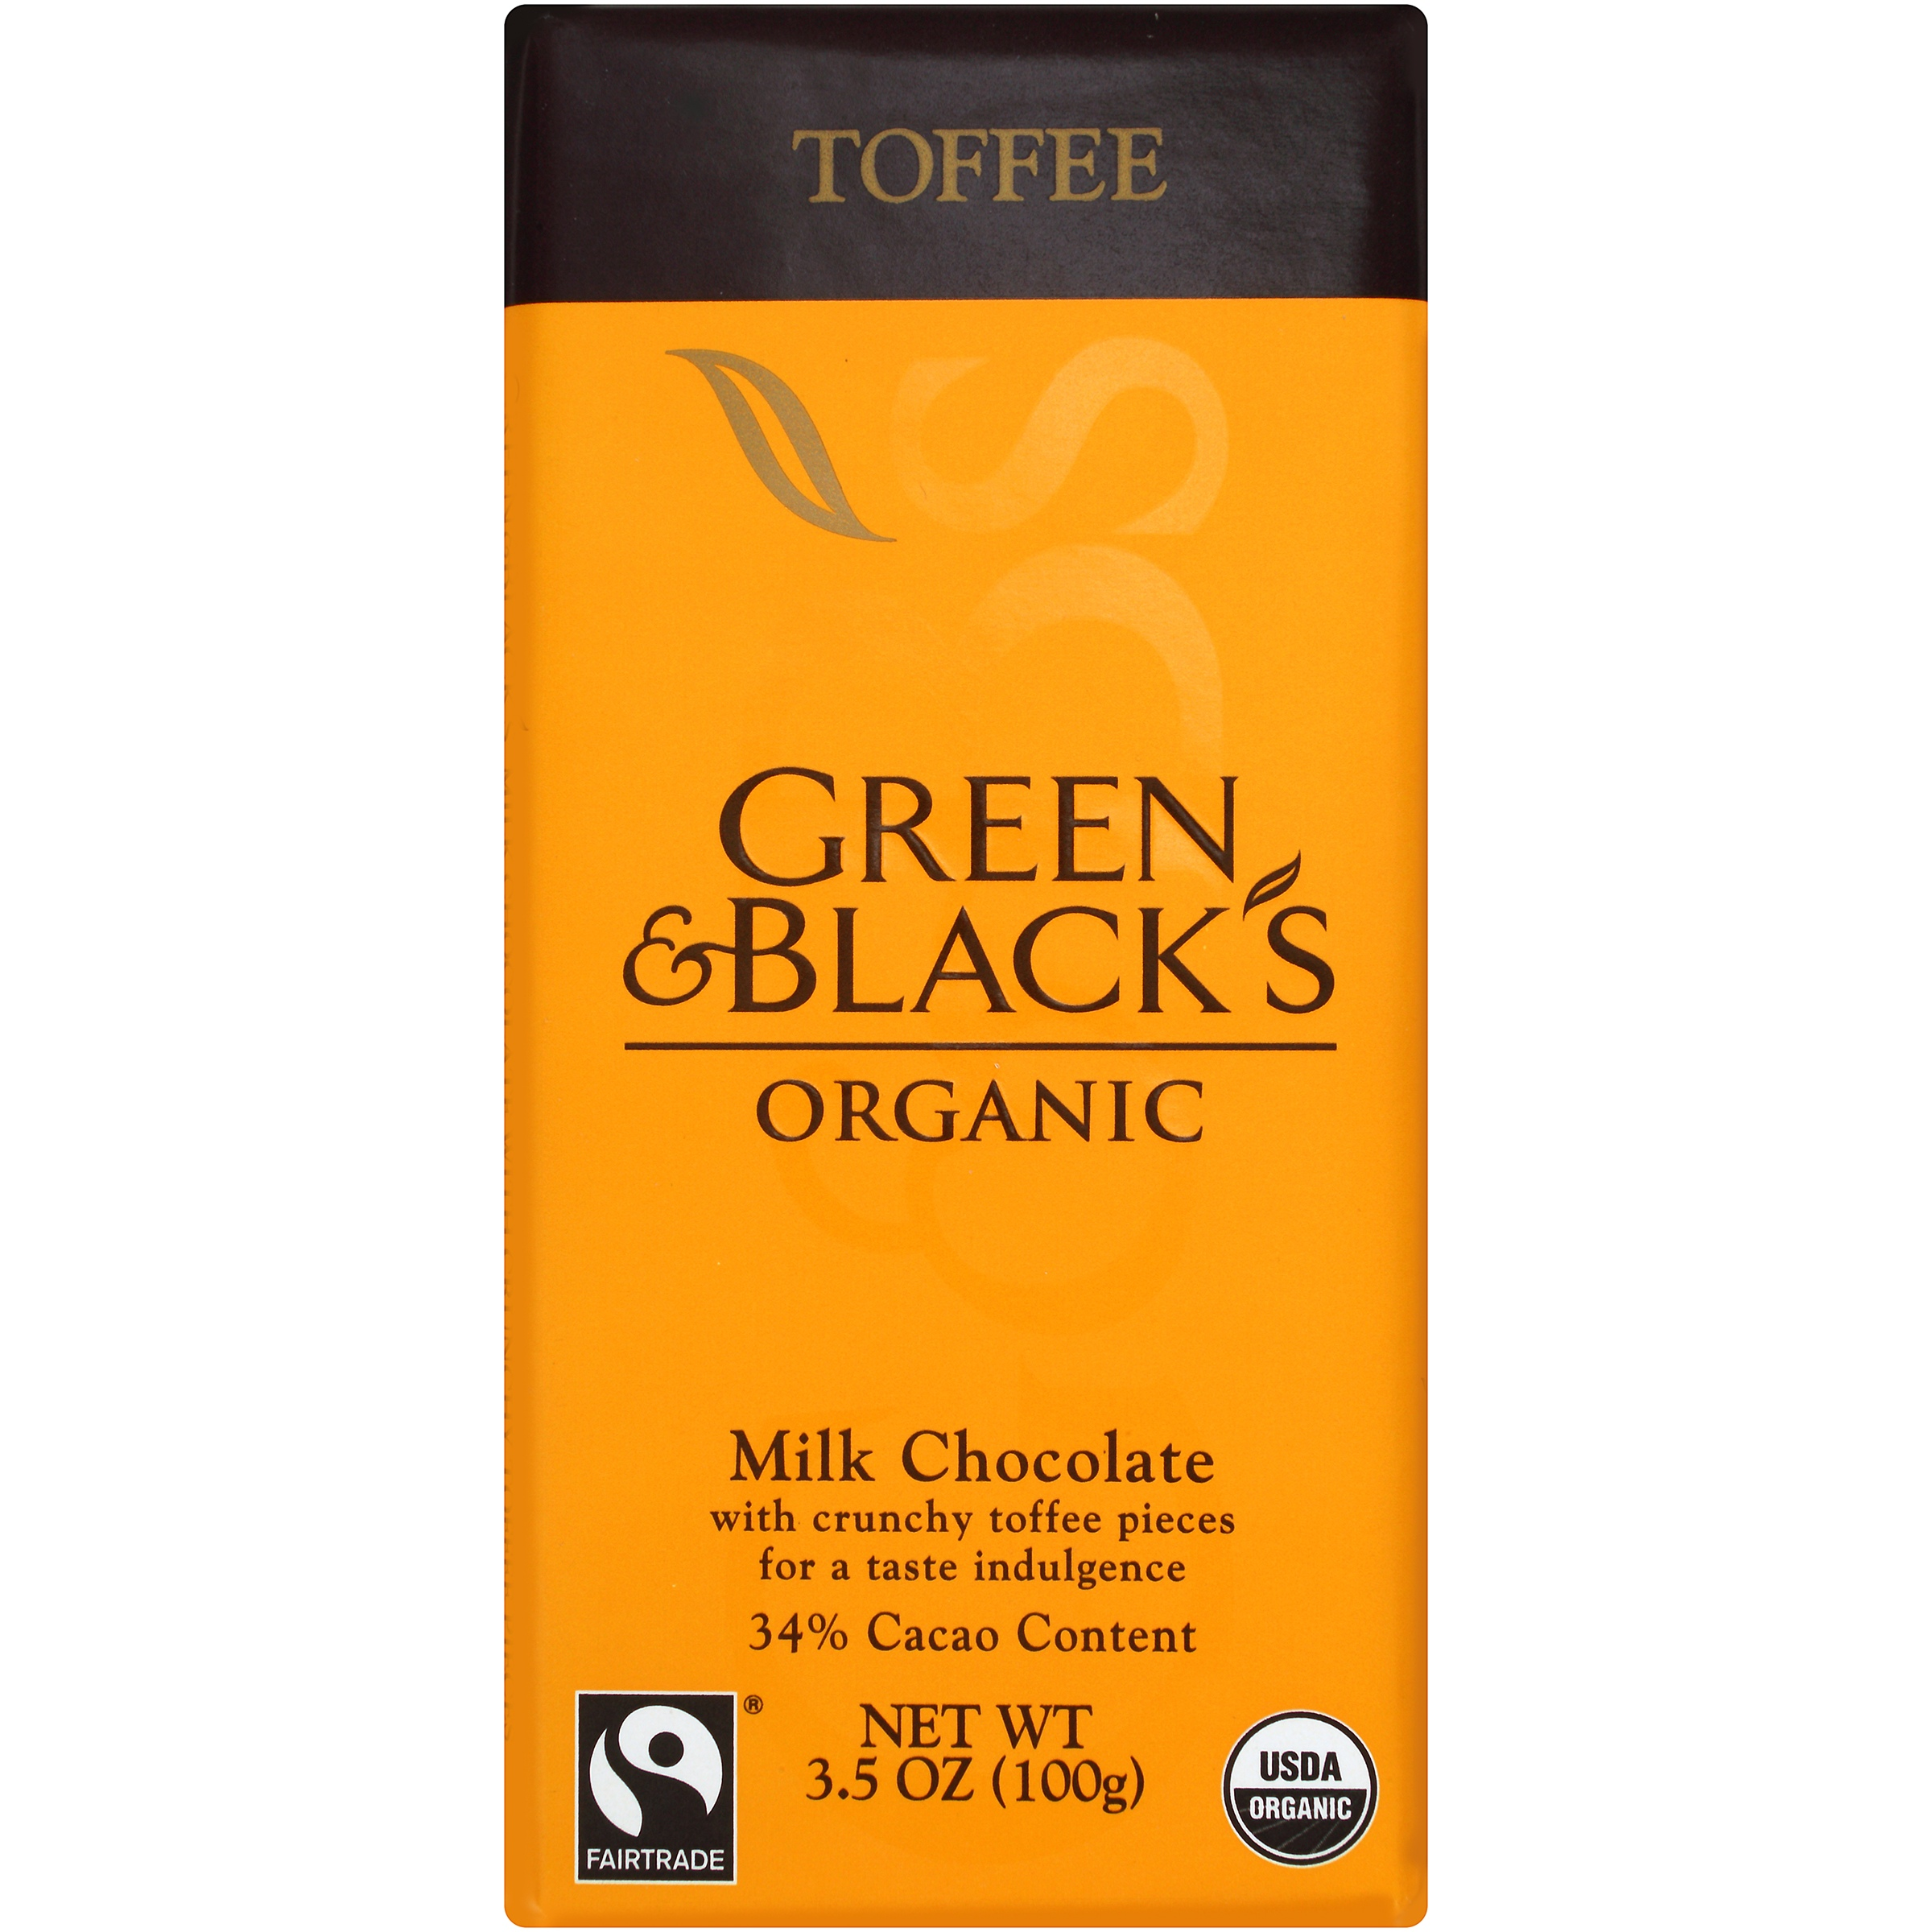 Green & Black's Organic Toffee Milk Chocolate 3.5 oz. Bar by Mondelez Global LLC